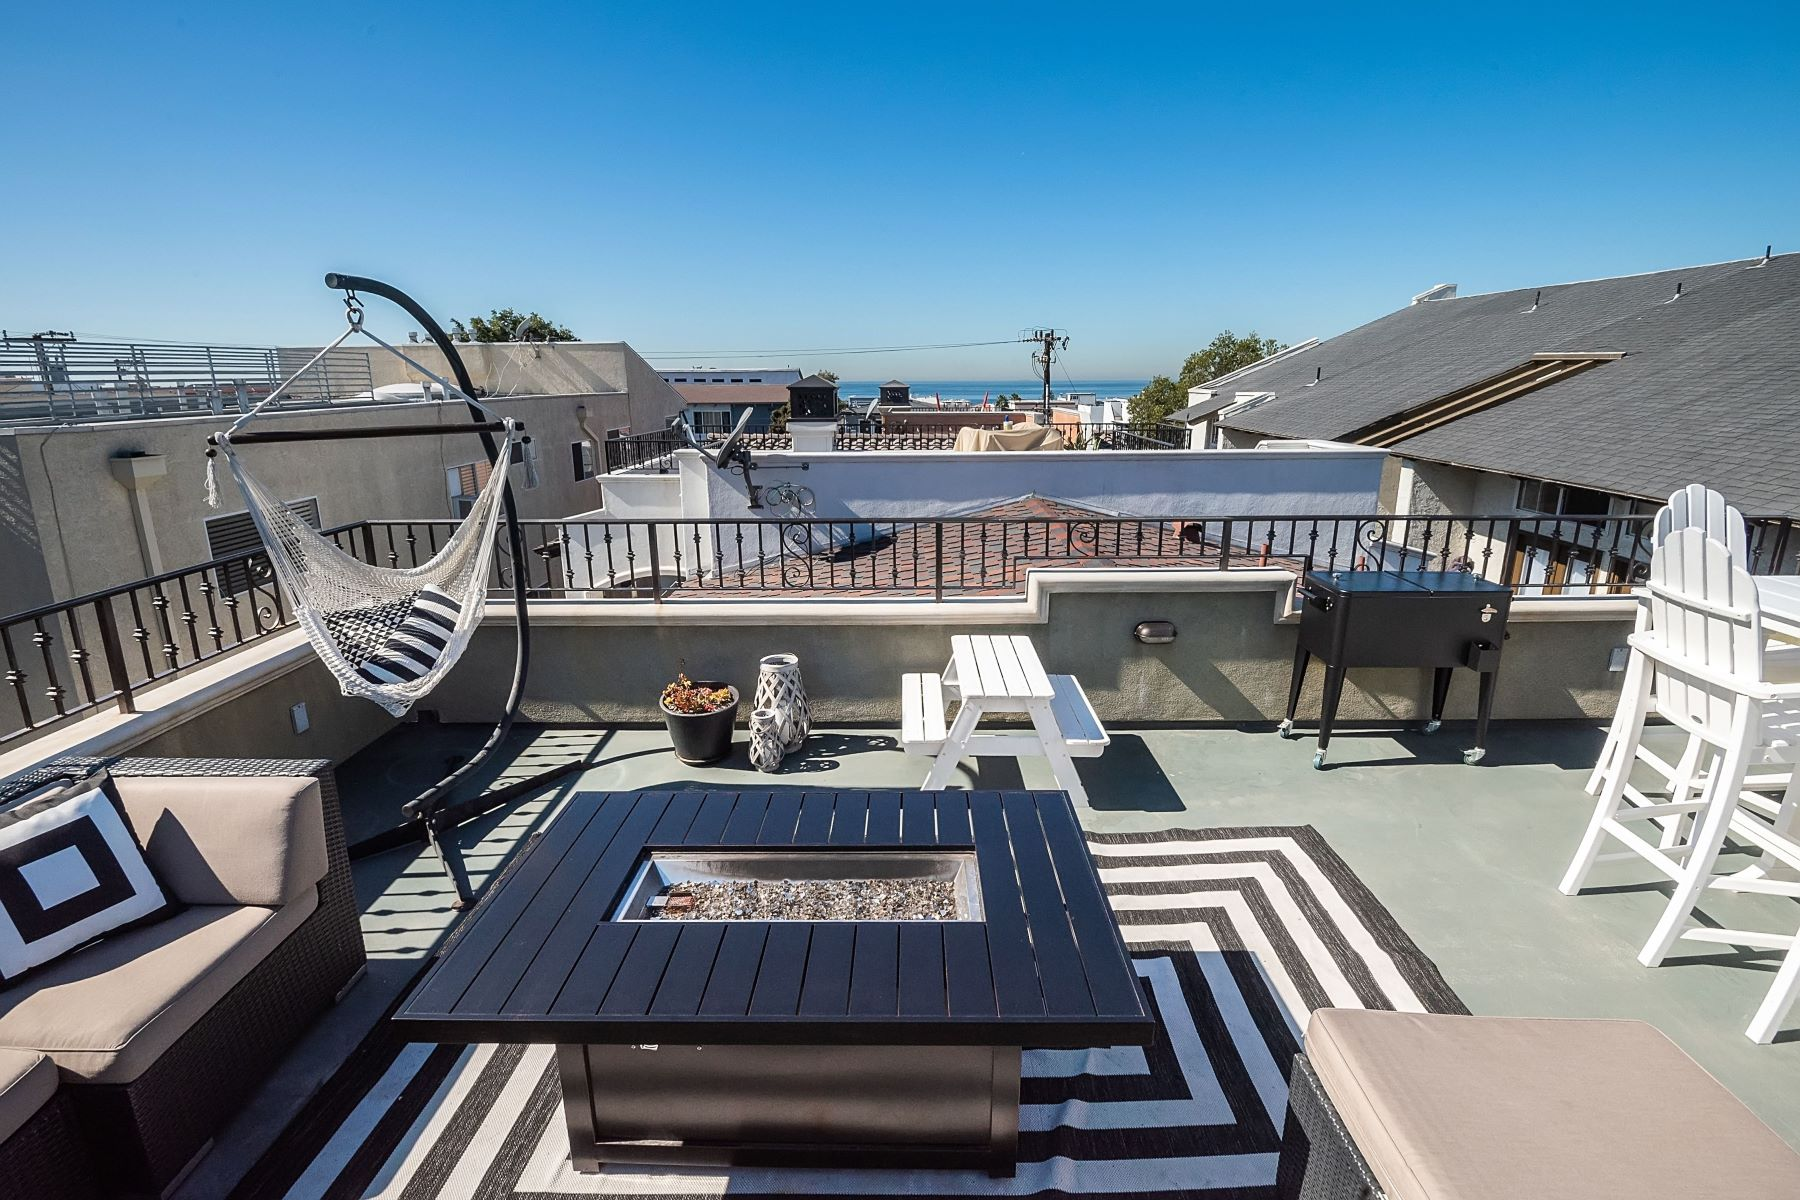 townhouses for Sale at 162 Monterey Boulevard, Hermosa Beach, CA 90254 162 Monterey Boulevard Hermosa Beach, California 90254 United States